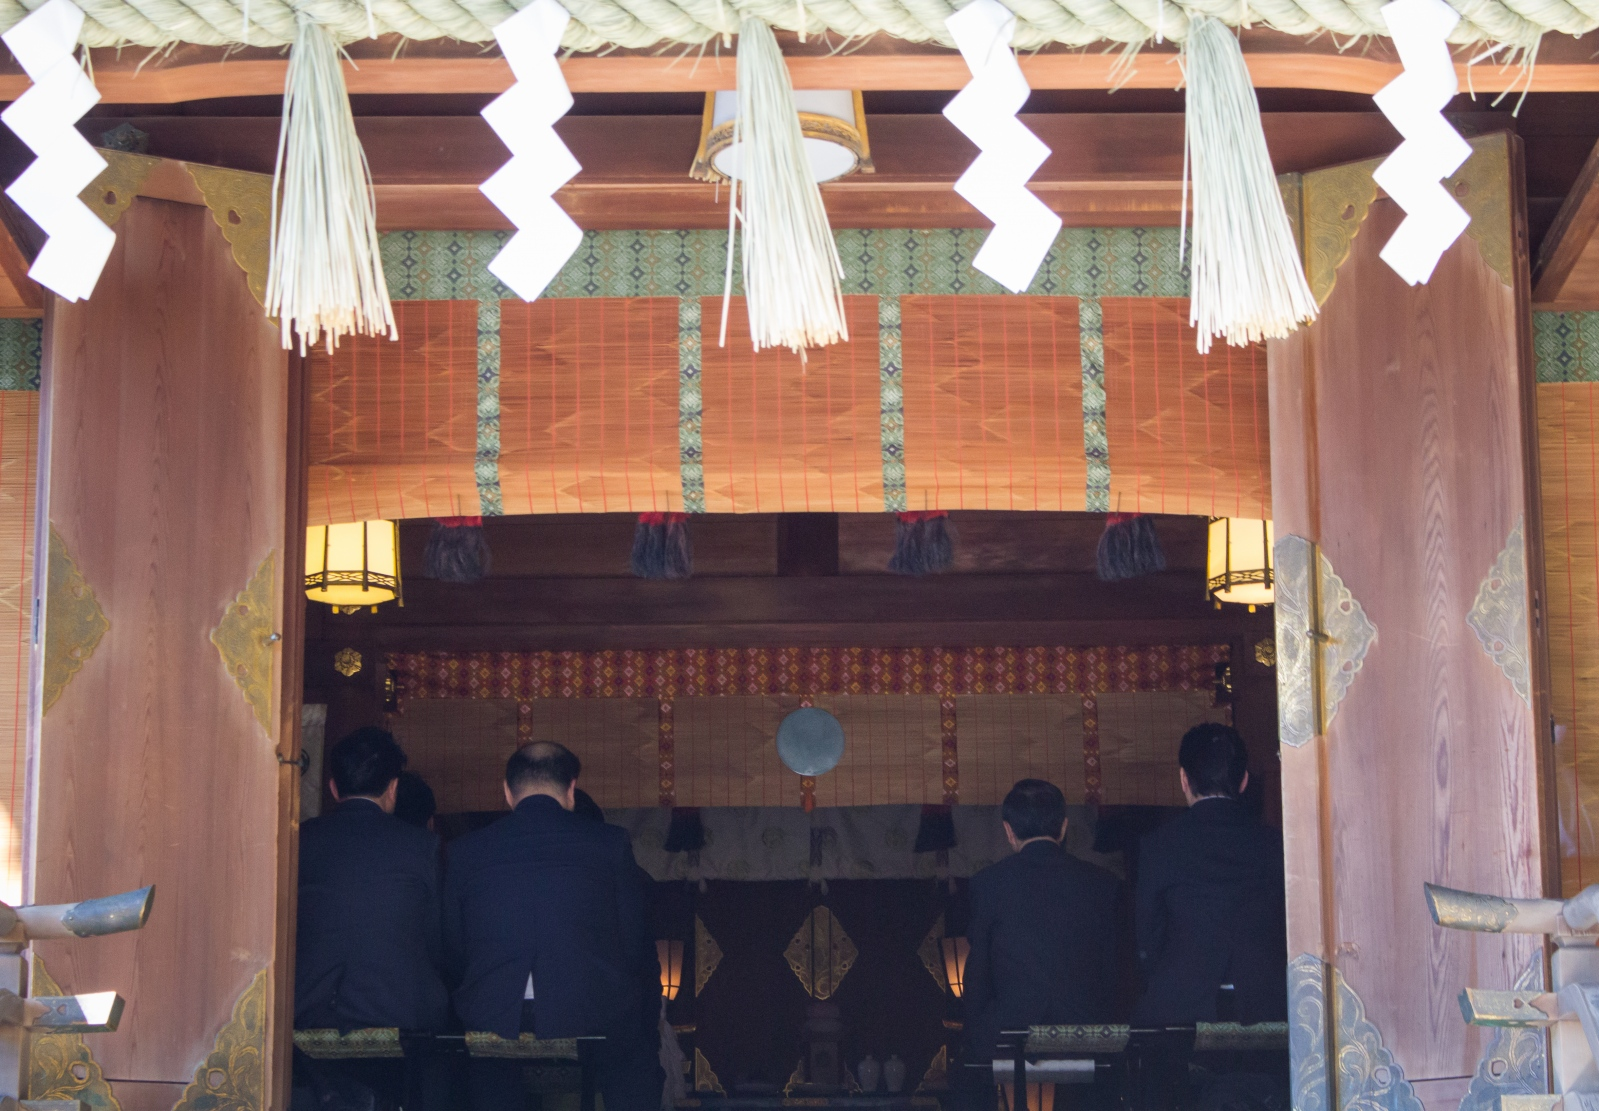 Japan, 2017 Salarymen Visiting a Shrine at their Lunch Break in Tokyo